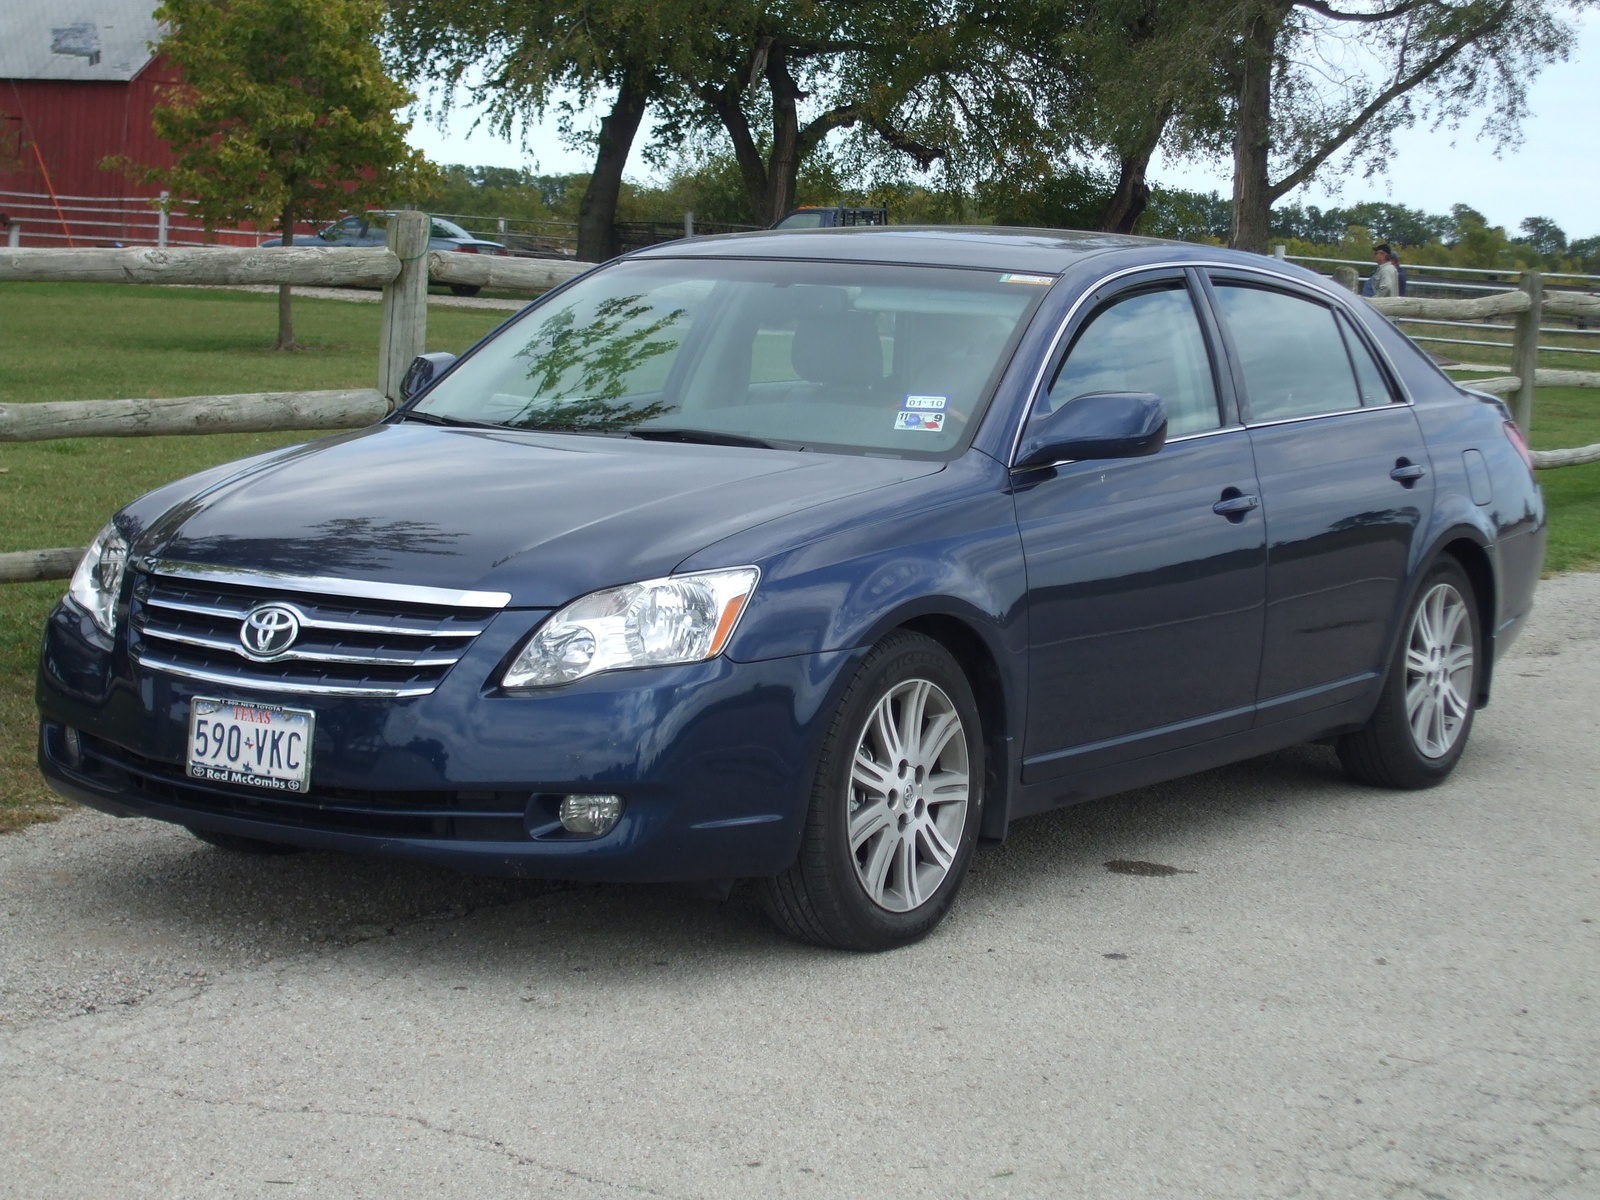 2007 Toyota Avalon Limited picture, exterior